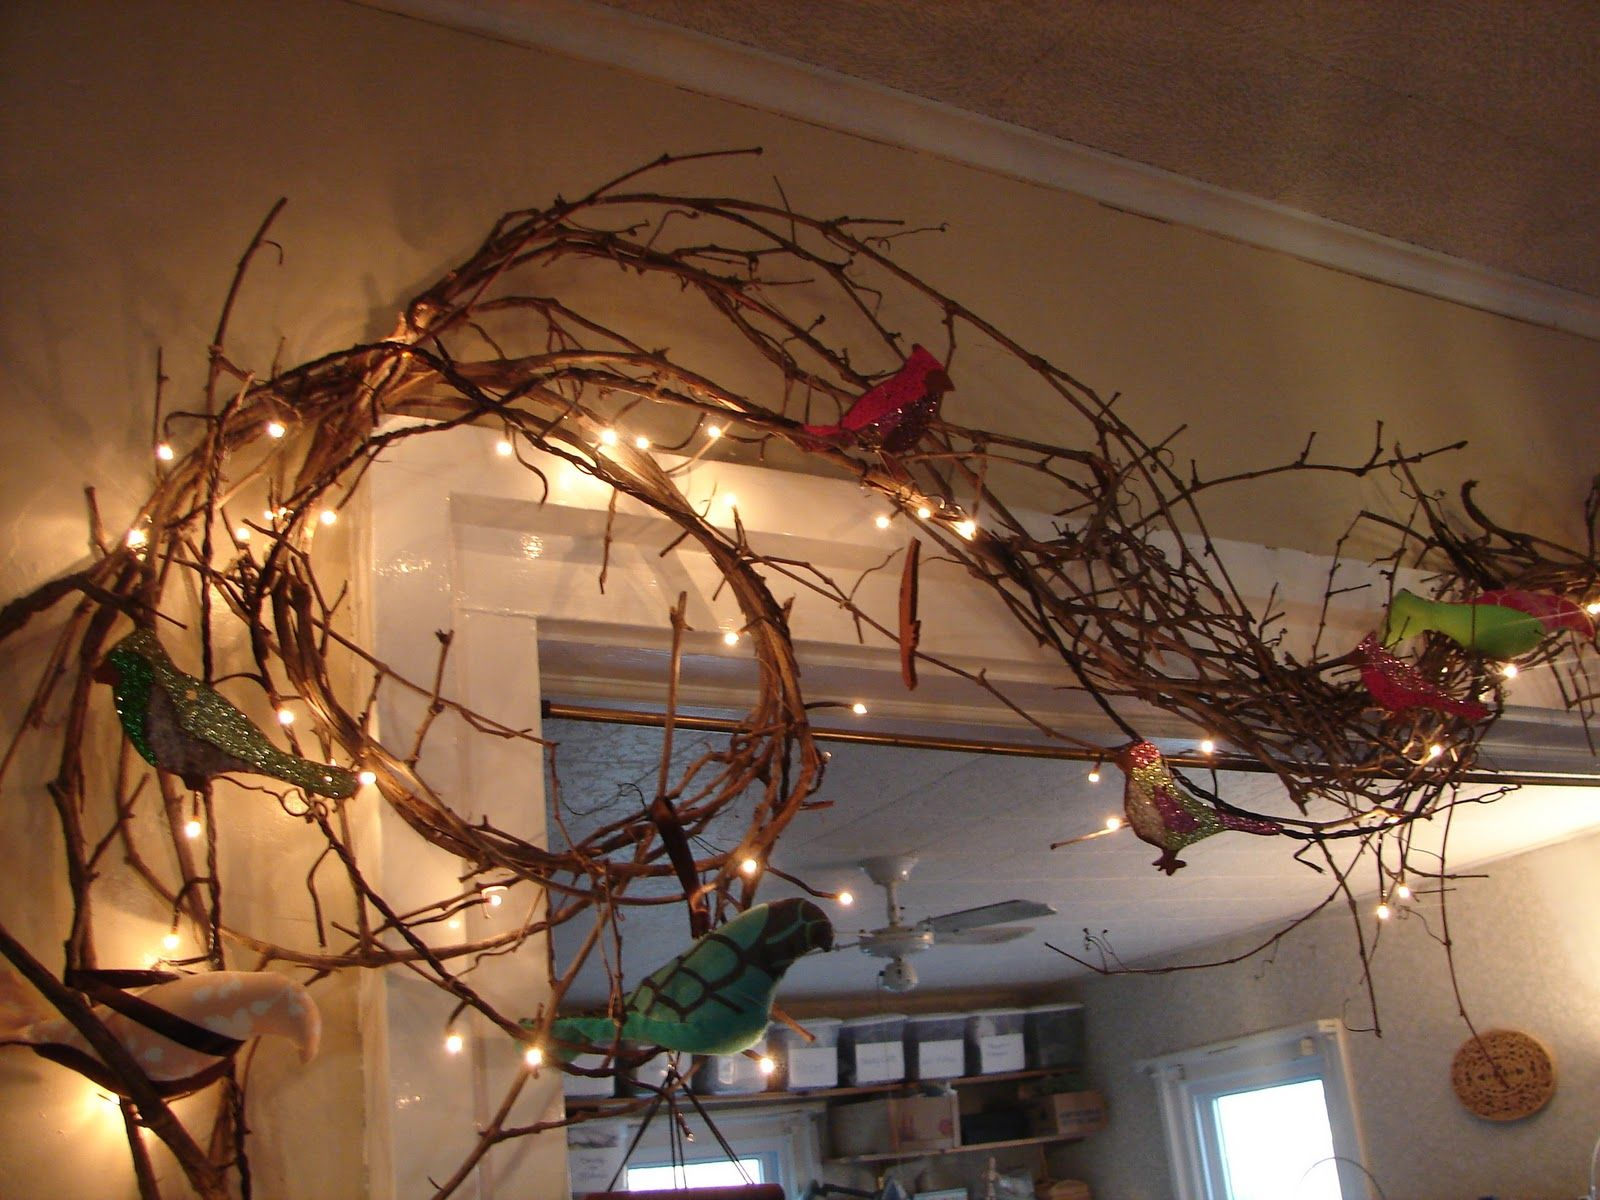 Grape vine for crafts - Grapevine Garland Decorating Ideas Here You See It Being Used Over A Doorway For Everyday